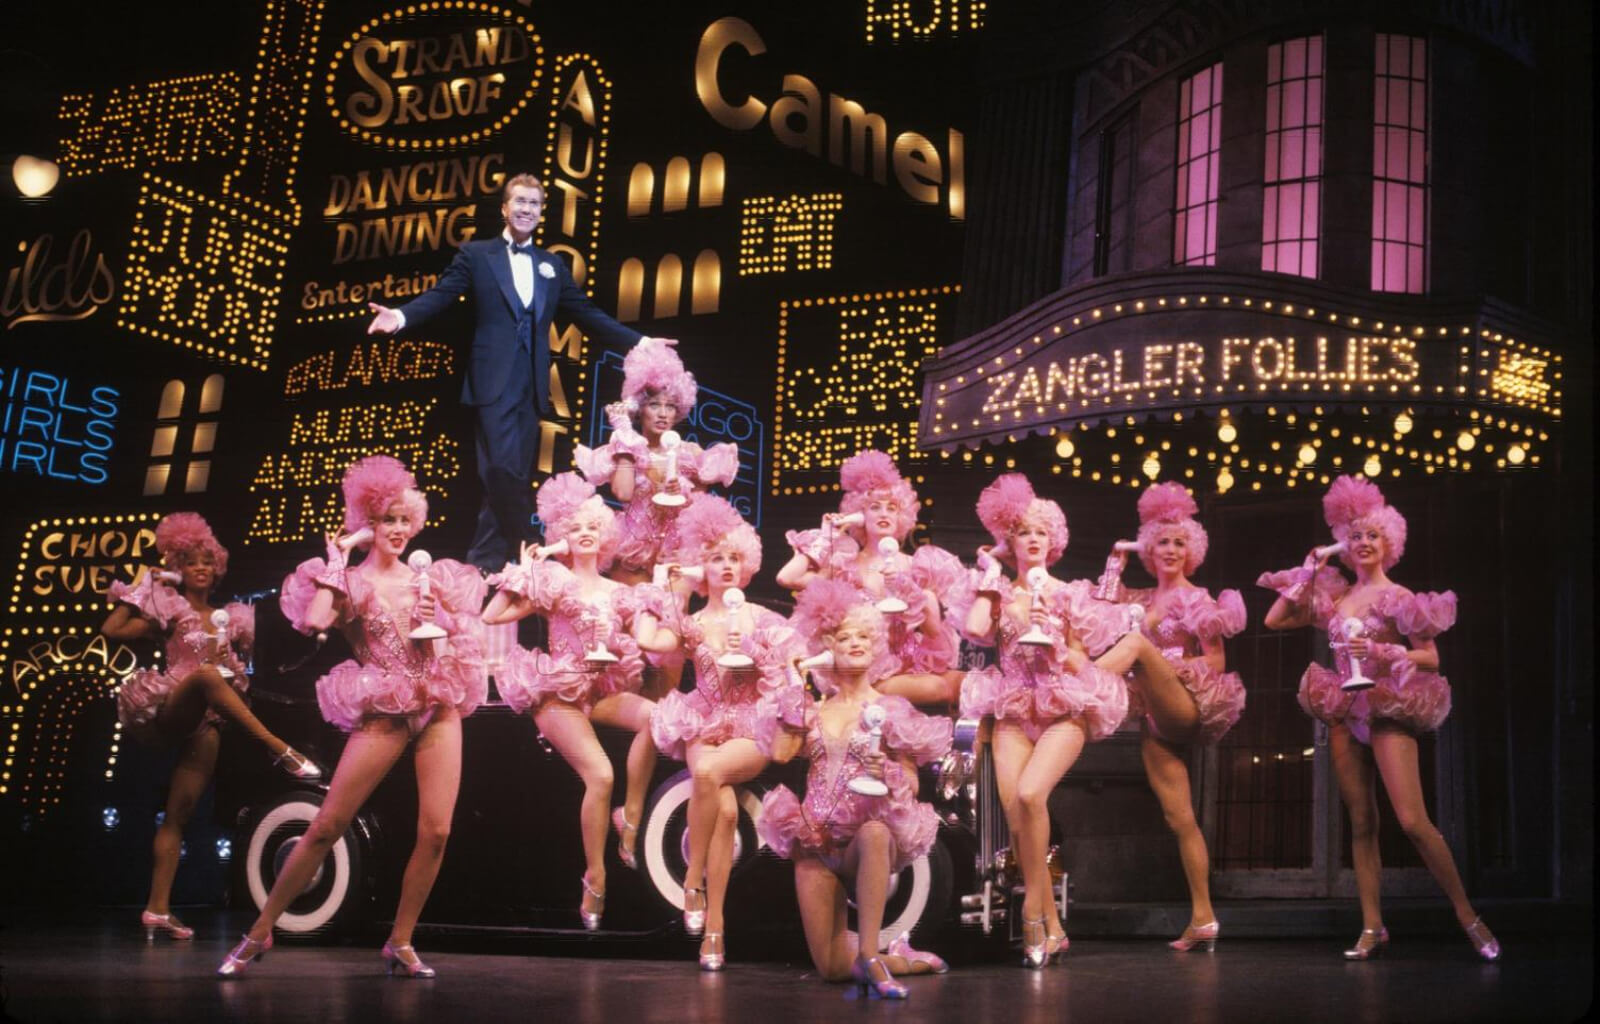 Bobby Child (Harry Groener) stands on top of a car with 10 female dancers all in matching pink tutus posed around him